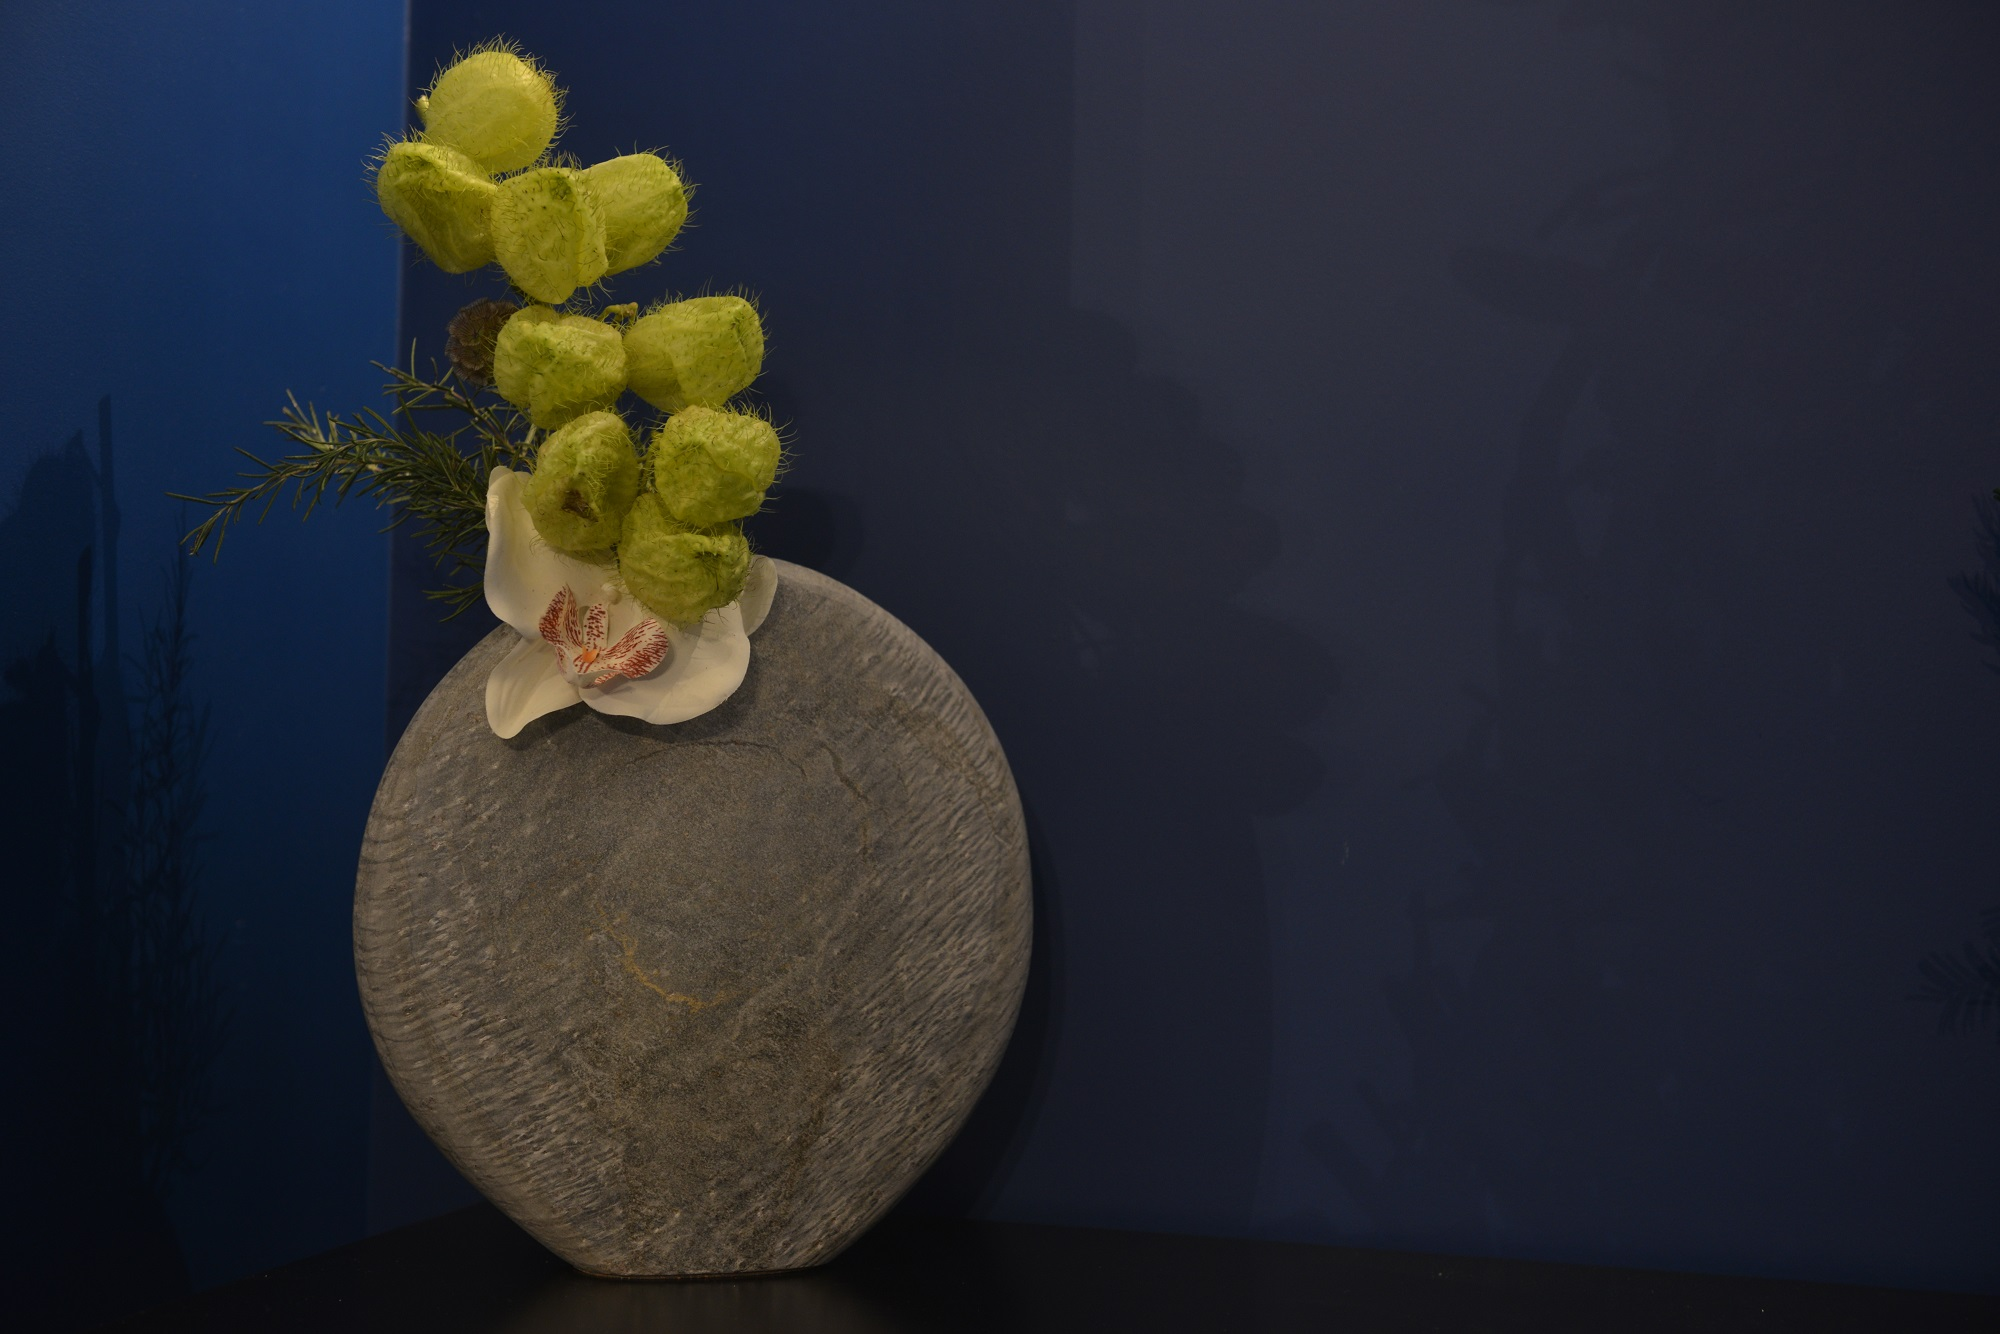 Memorial slate vase foras memorial slate vase floridaeventfo Images